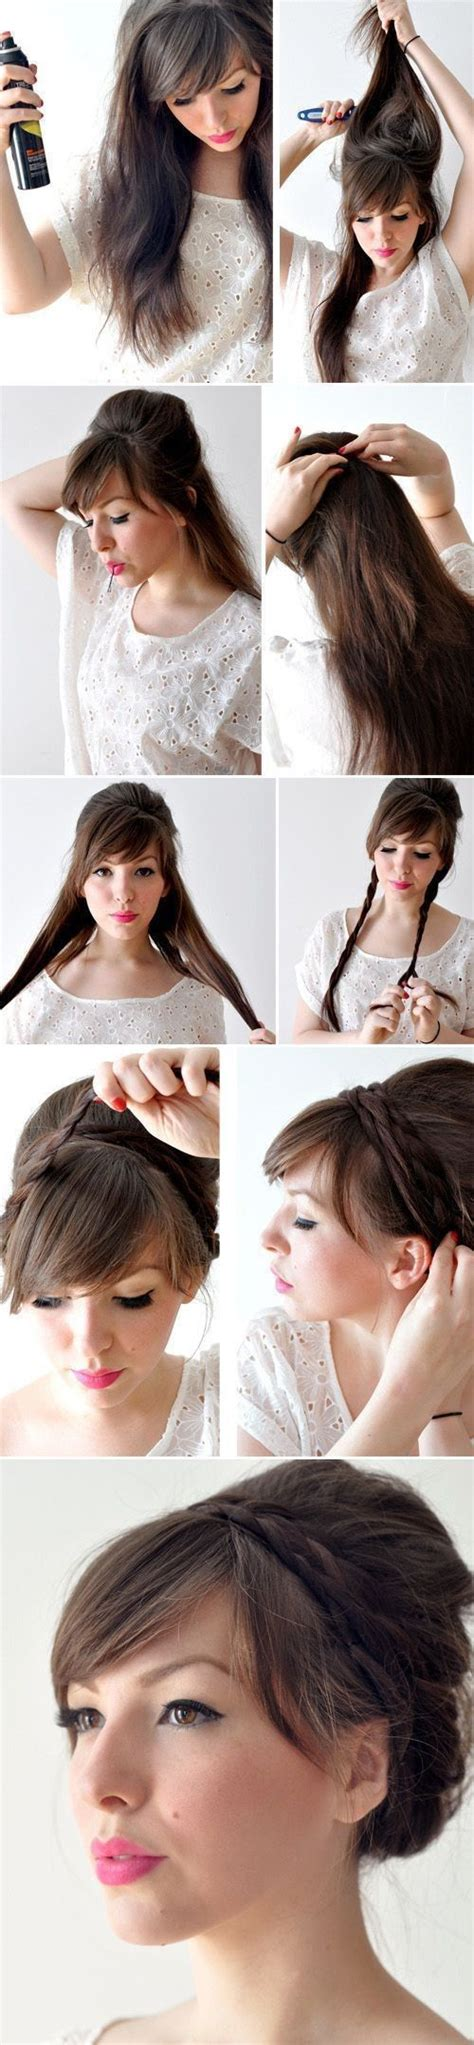 hairstyles and easy to do m easy to do hairstyles easy step by step hairstyles